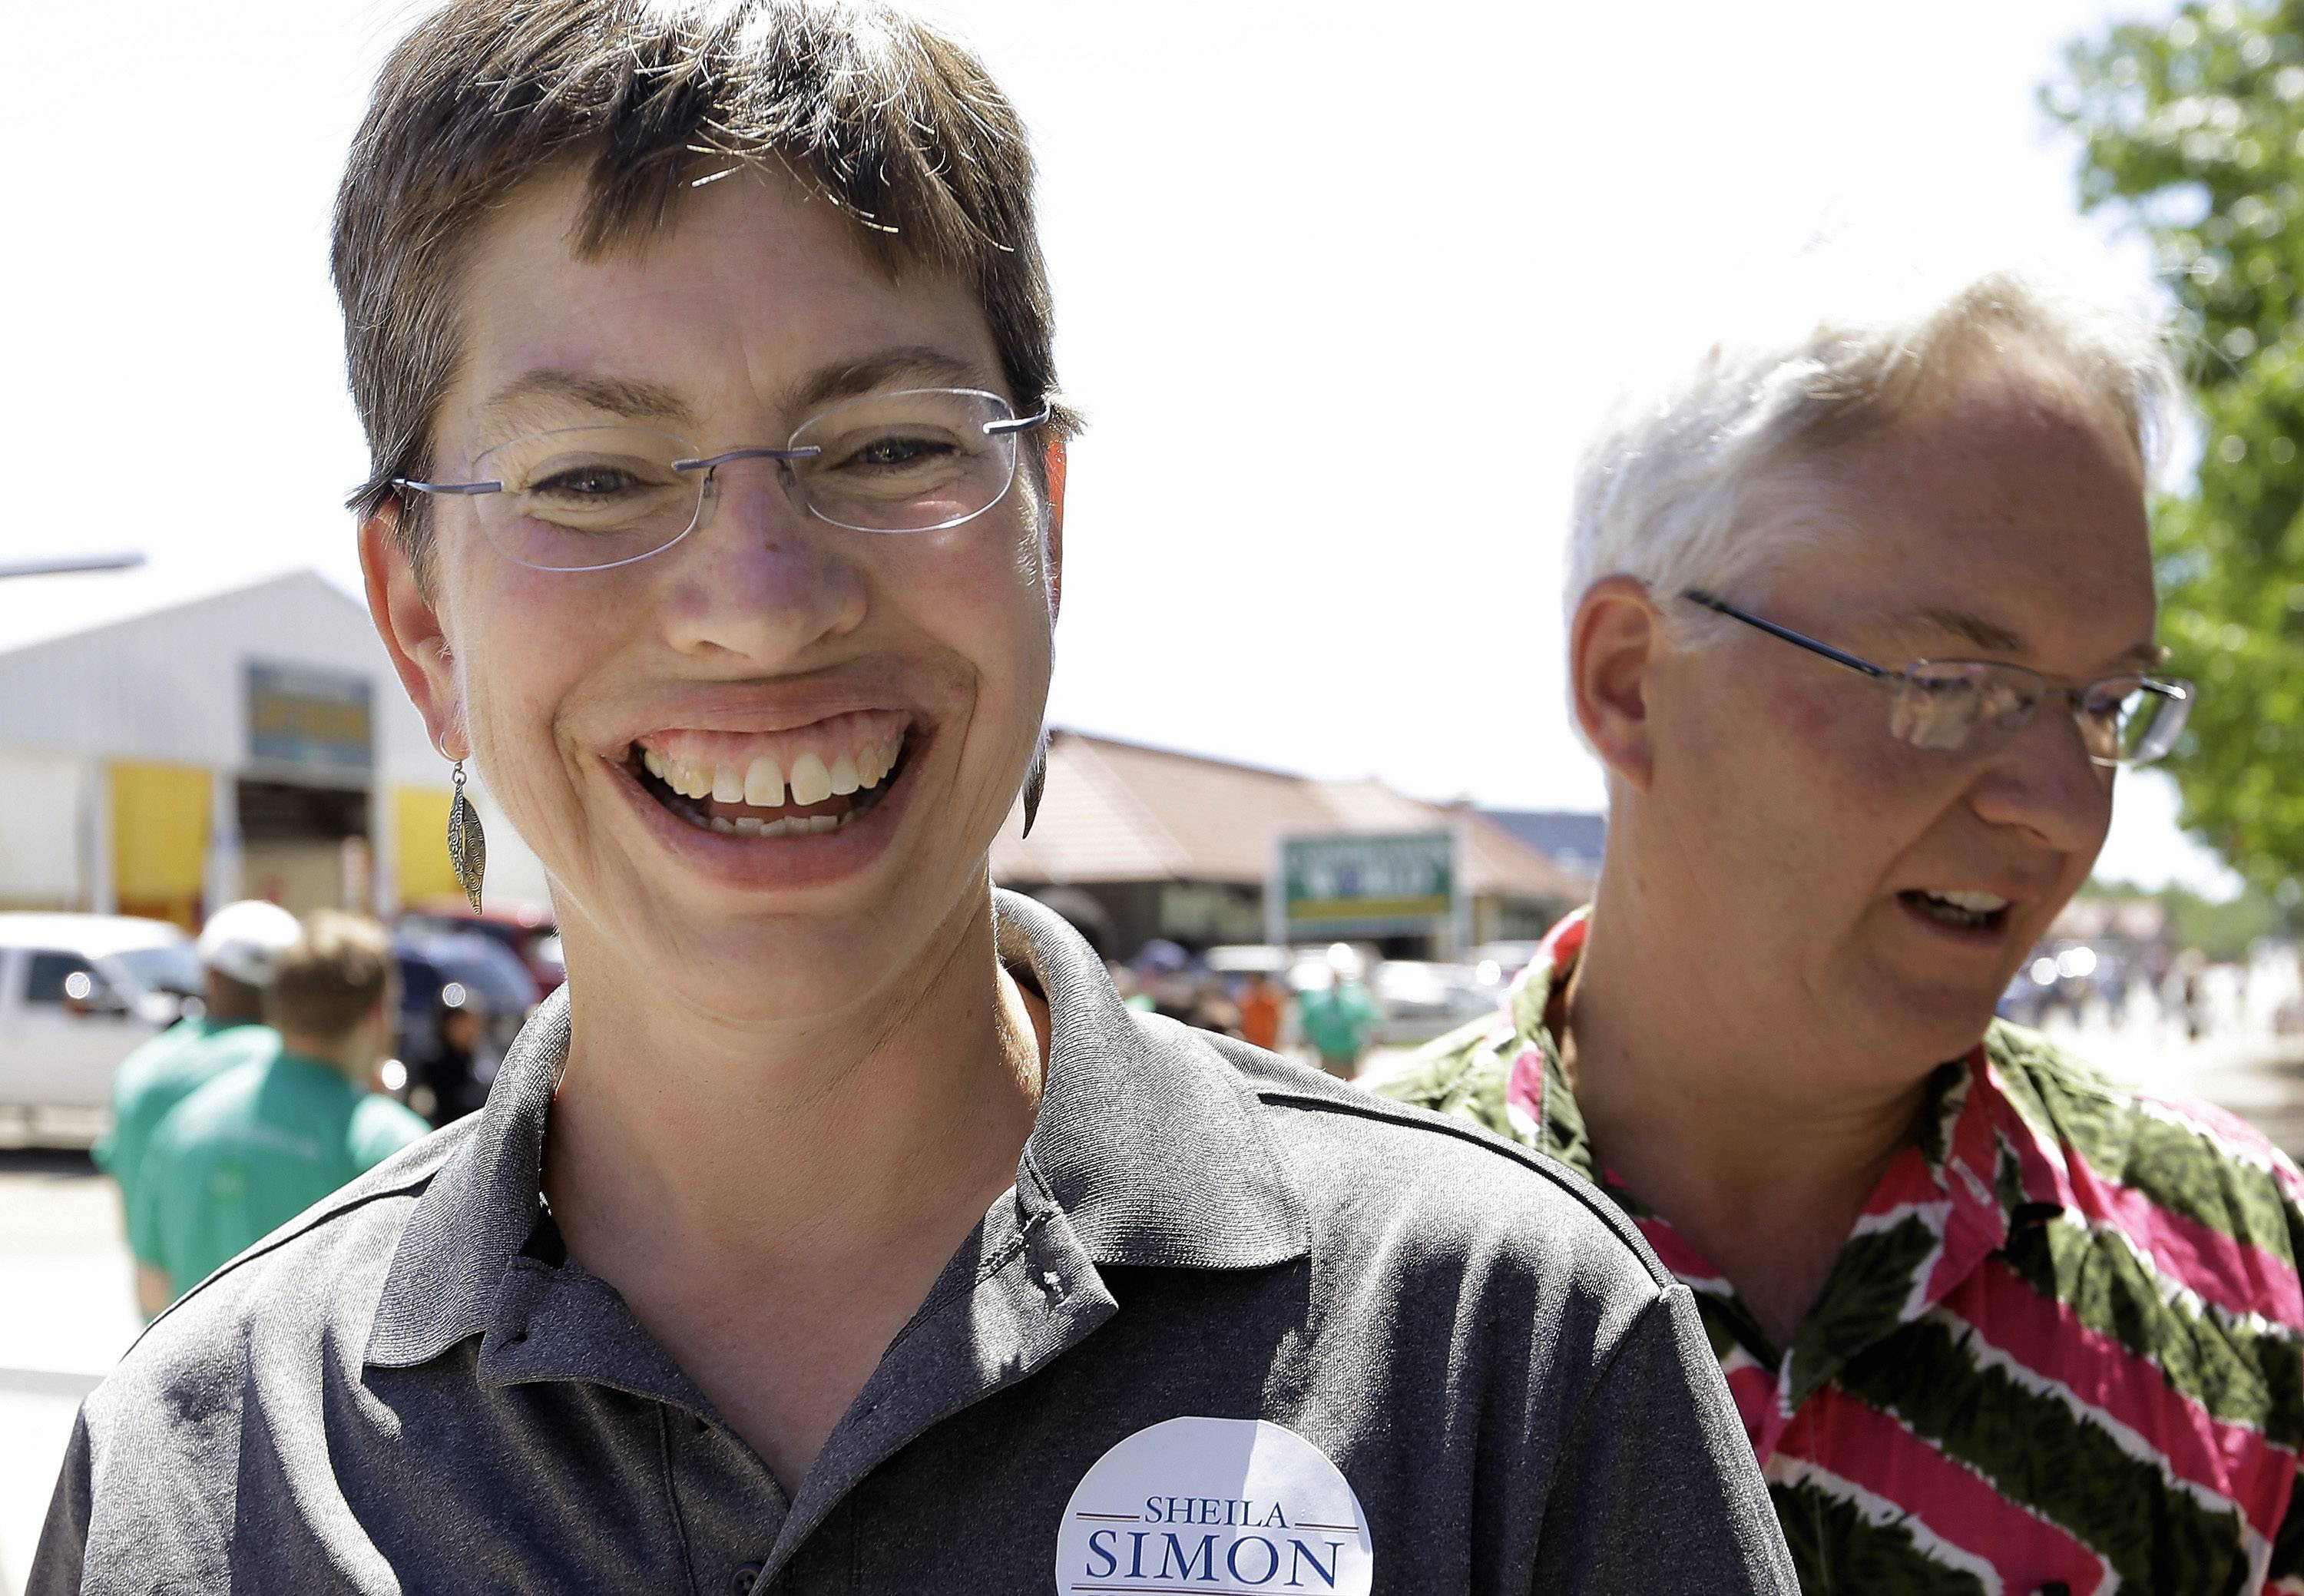 Illinois Lt. Gov. Sheila Simon, the Democratic candidate for the state comptroller, campaigns and participates in Governor's Day at the Illinois State Fair on Wednesday in Springfield.